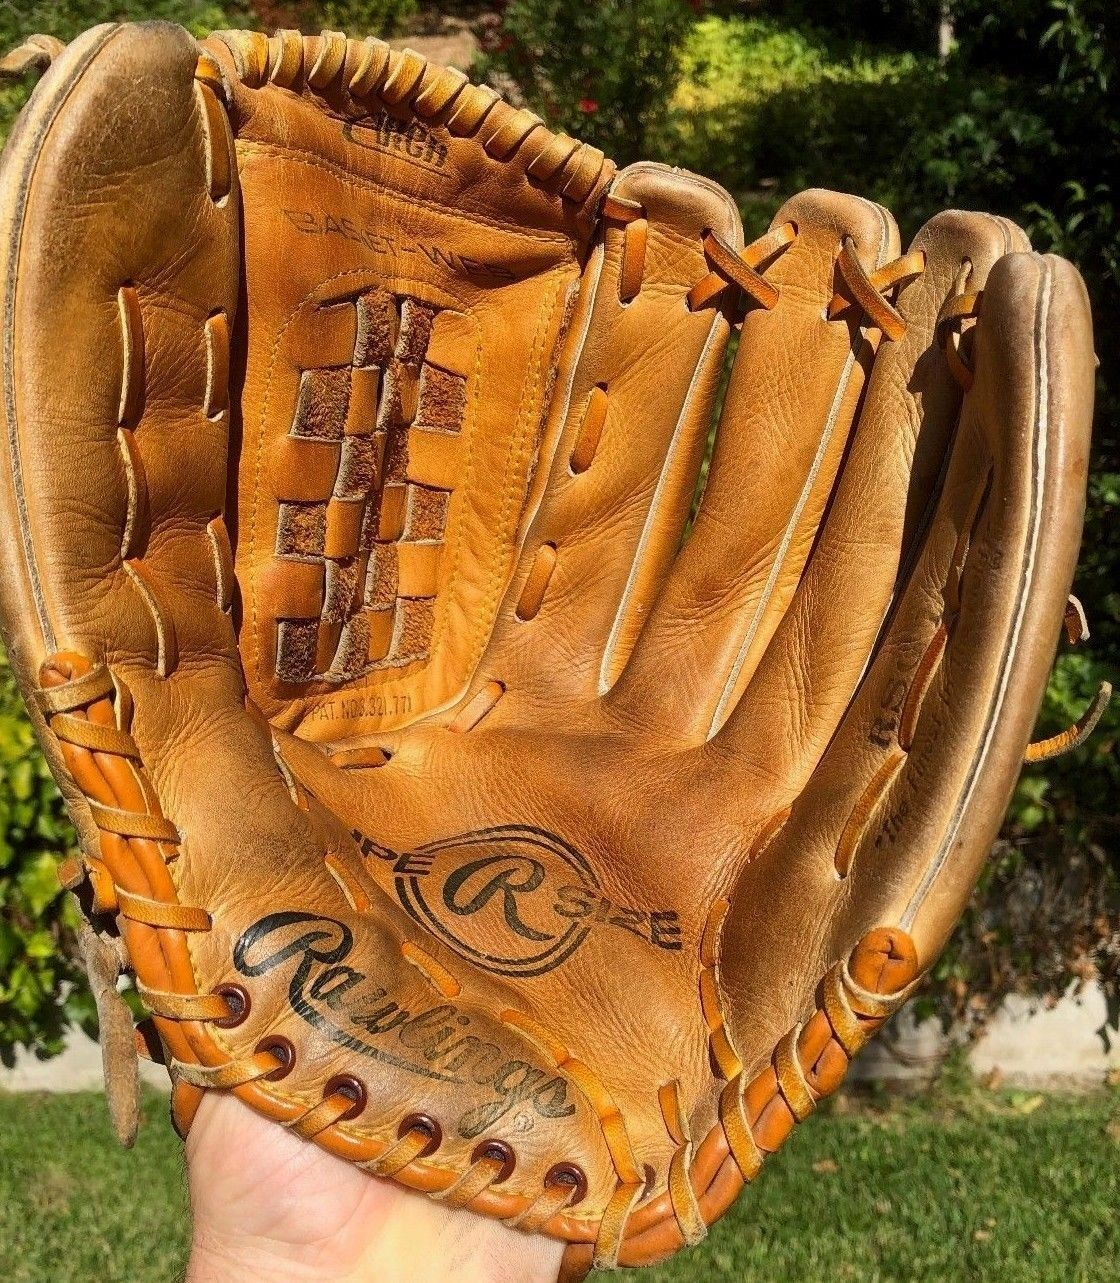 120 Rawlings Supersize 13 5 Pro Premium Leather Baseball Softball Glove Mitt Ebay Link Softball Gloves Baseball Softball Gloves Mitts Leather